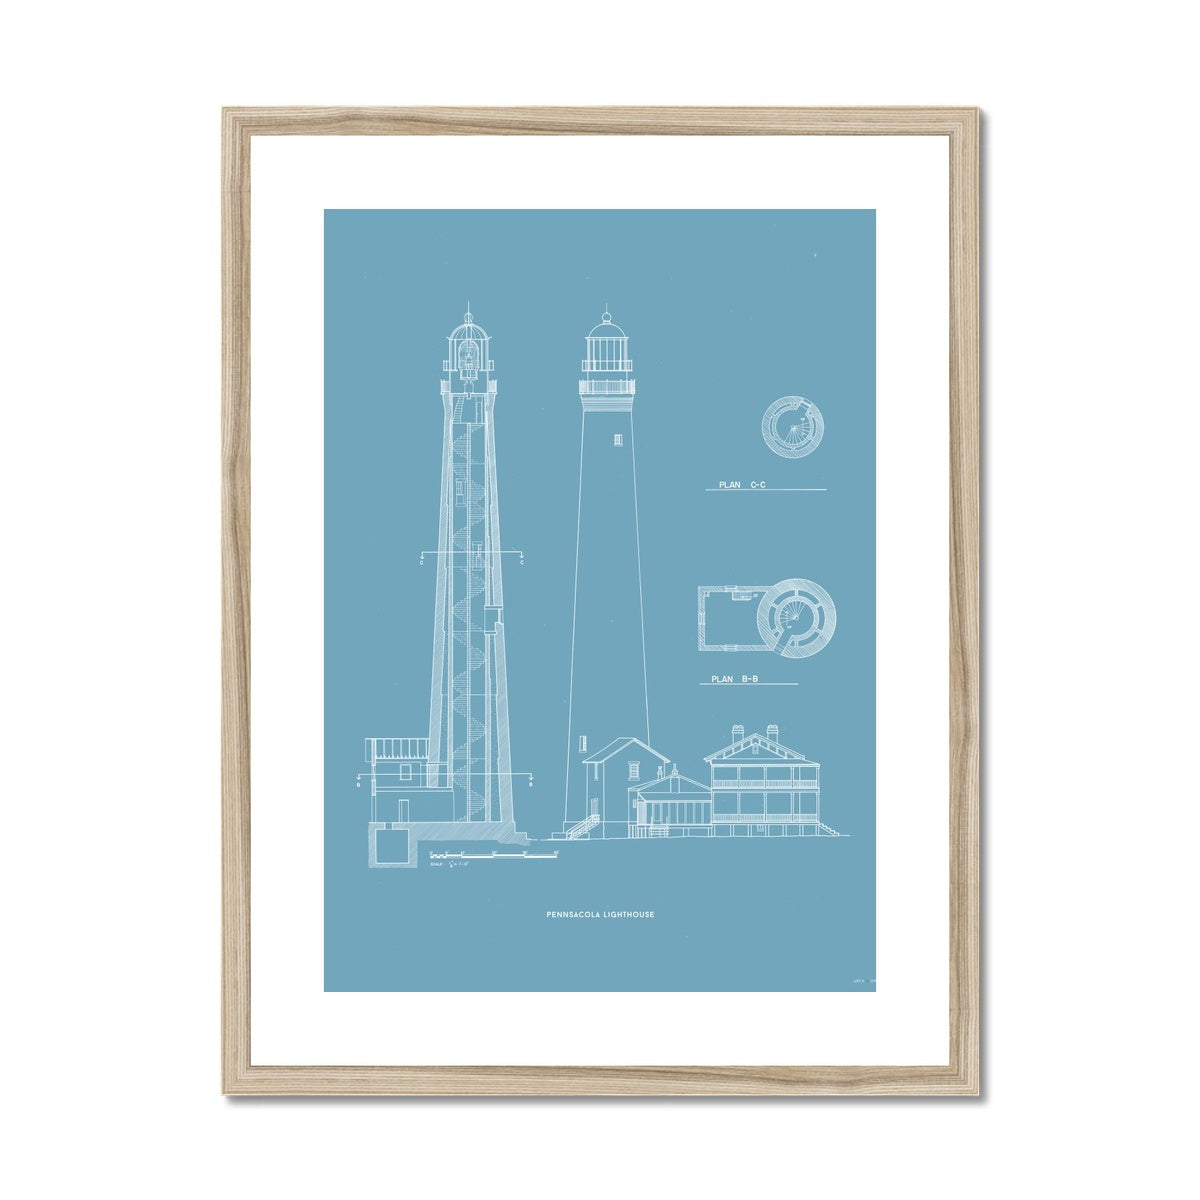 The Pensacola Lighthouse - West Elevation and Cross Section - Blue -  Framed & Mounted Print